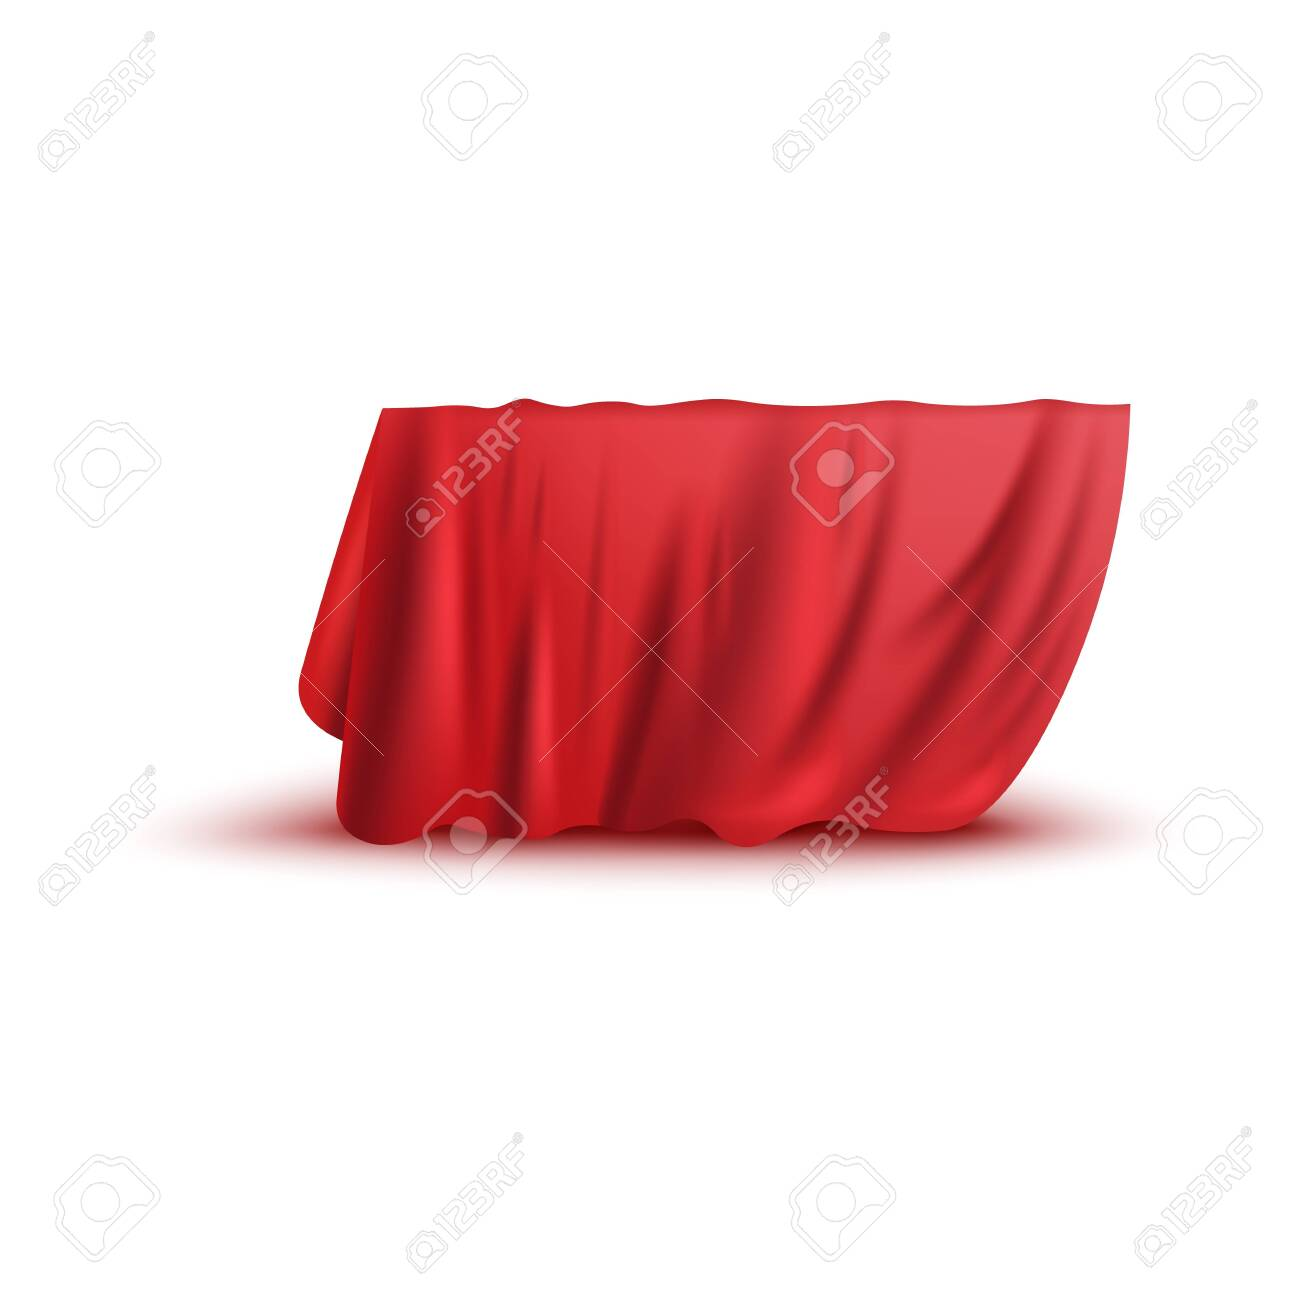 Covering drape, red curtain or cloth 3d photo realistic vector illustration isolated on white background. Fabric hiding some object, secret gift before presentation. - 130223460